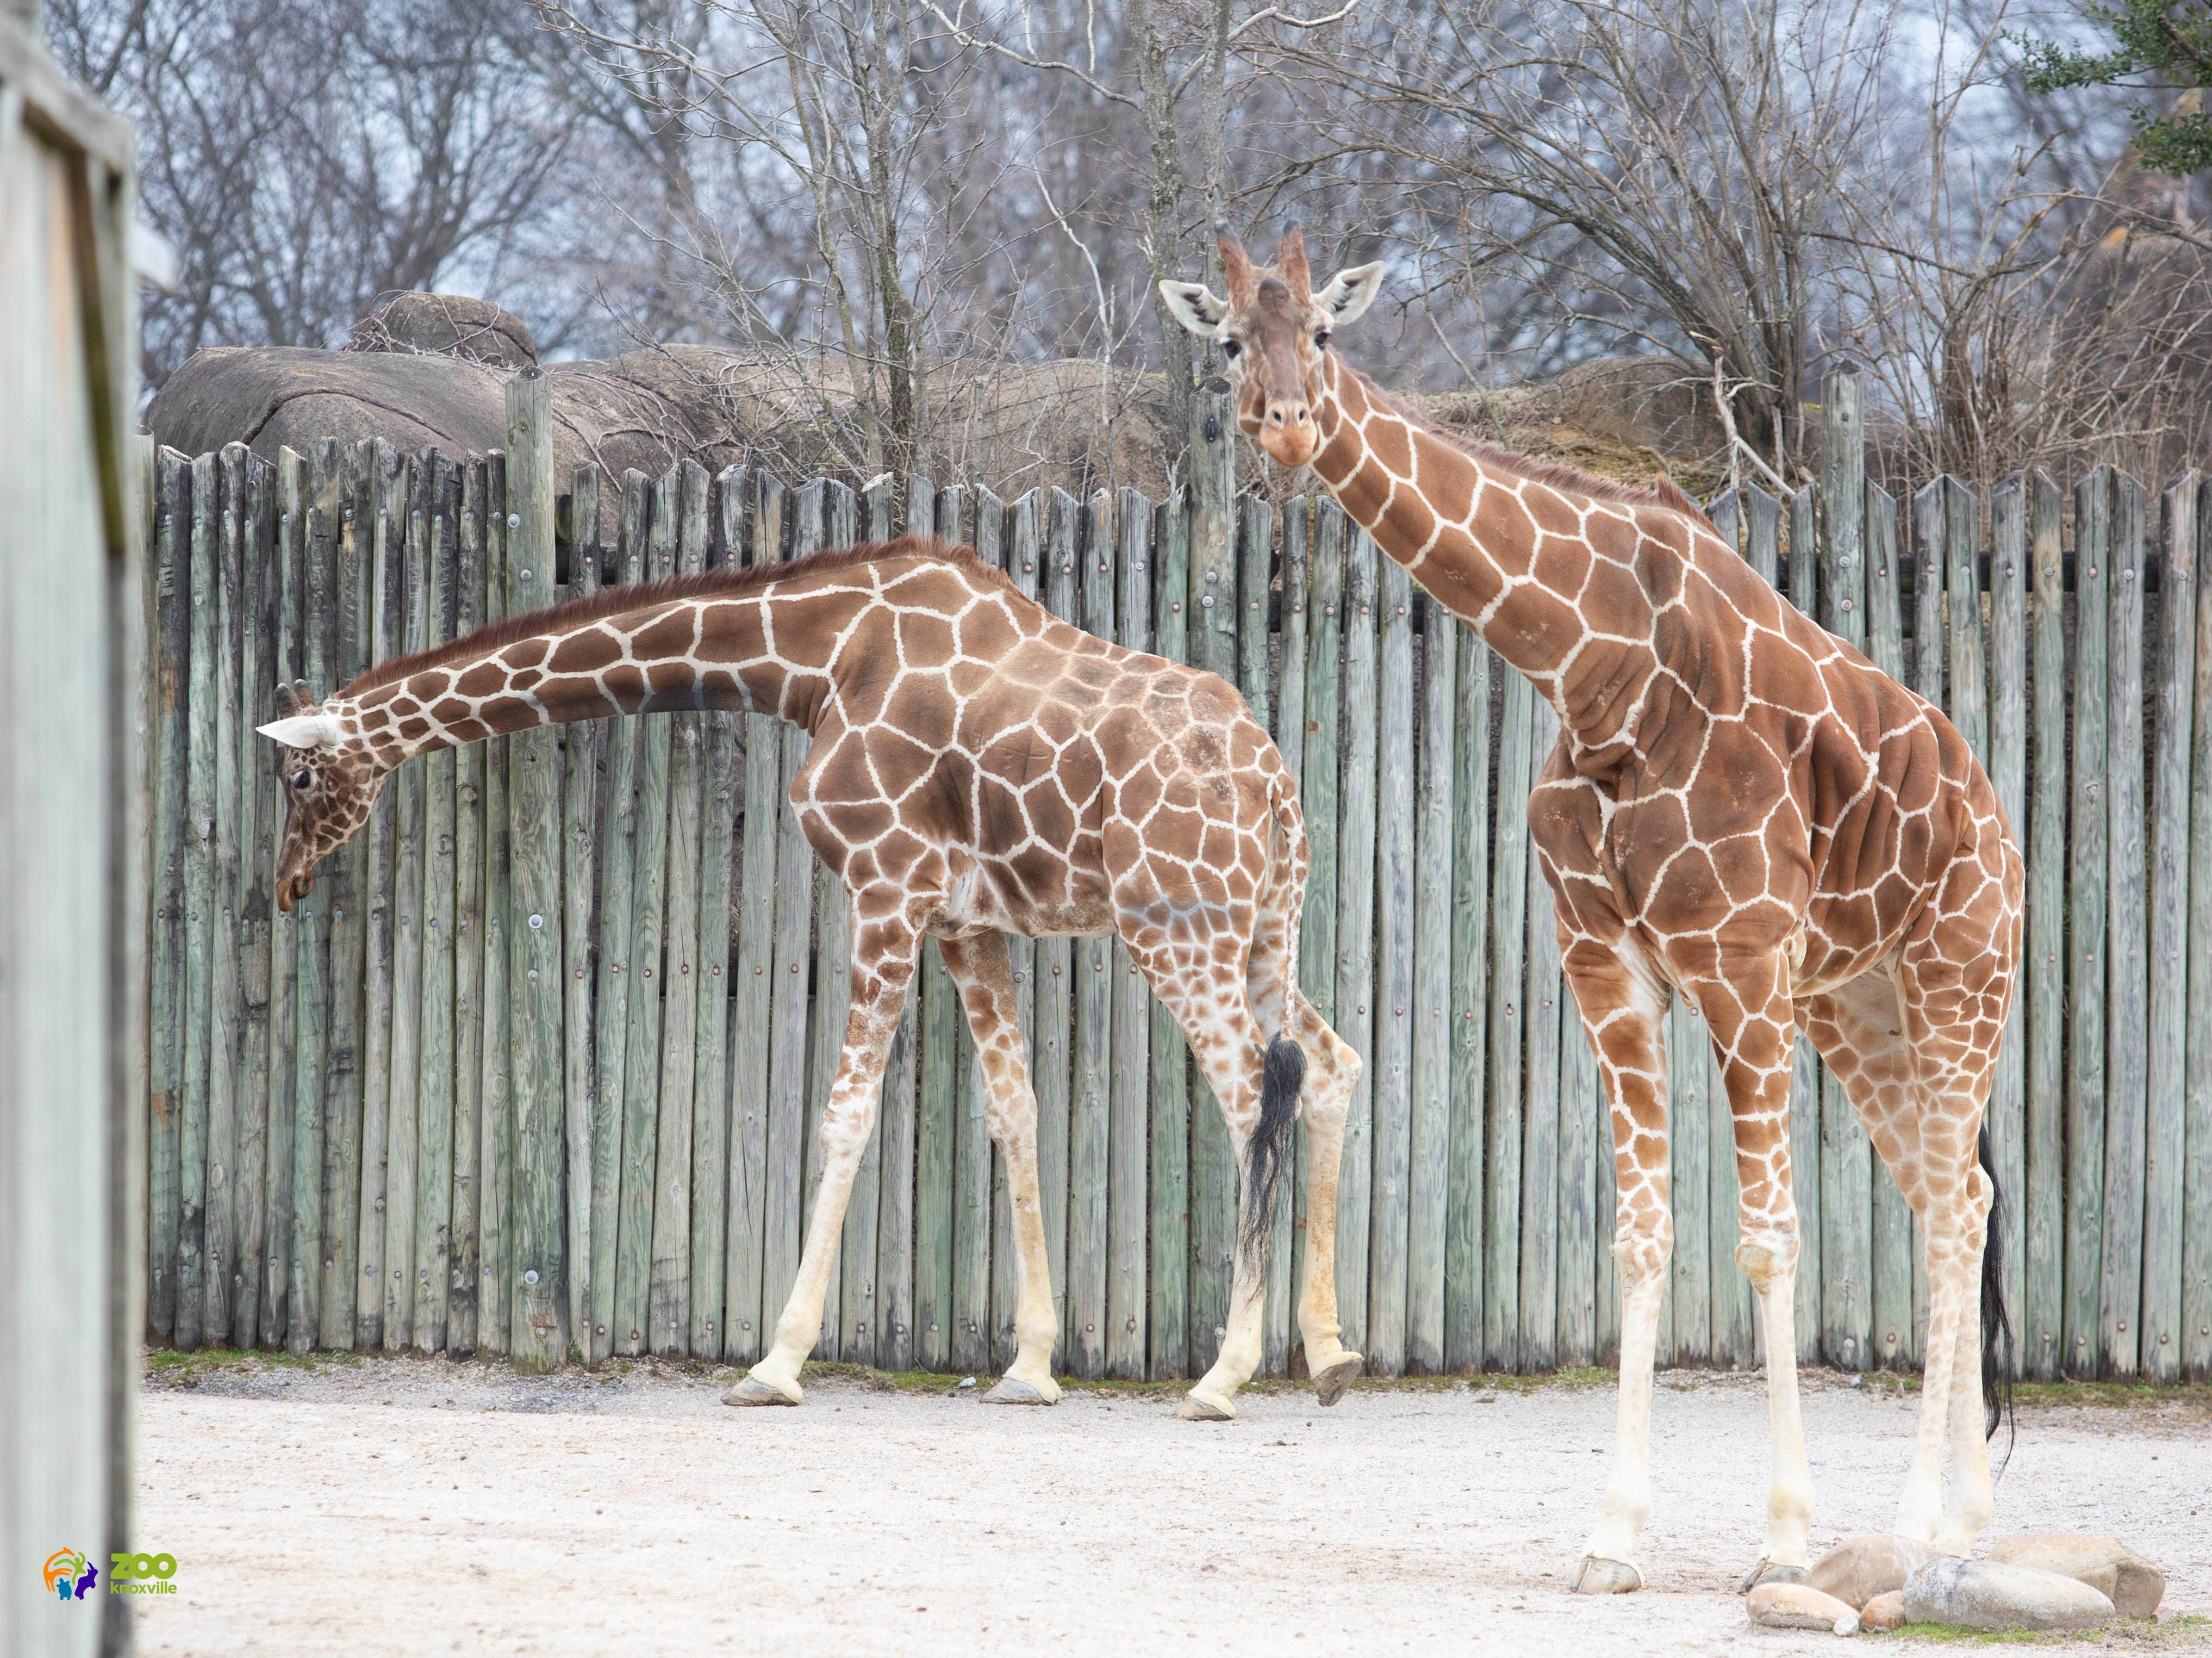 Patches, left, with her daughter Lucille, right, in the outdoor exhibit of their Grassland Africa natural habitat at Zoo Knoxville.